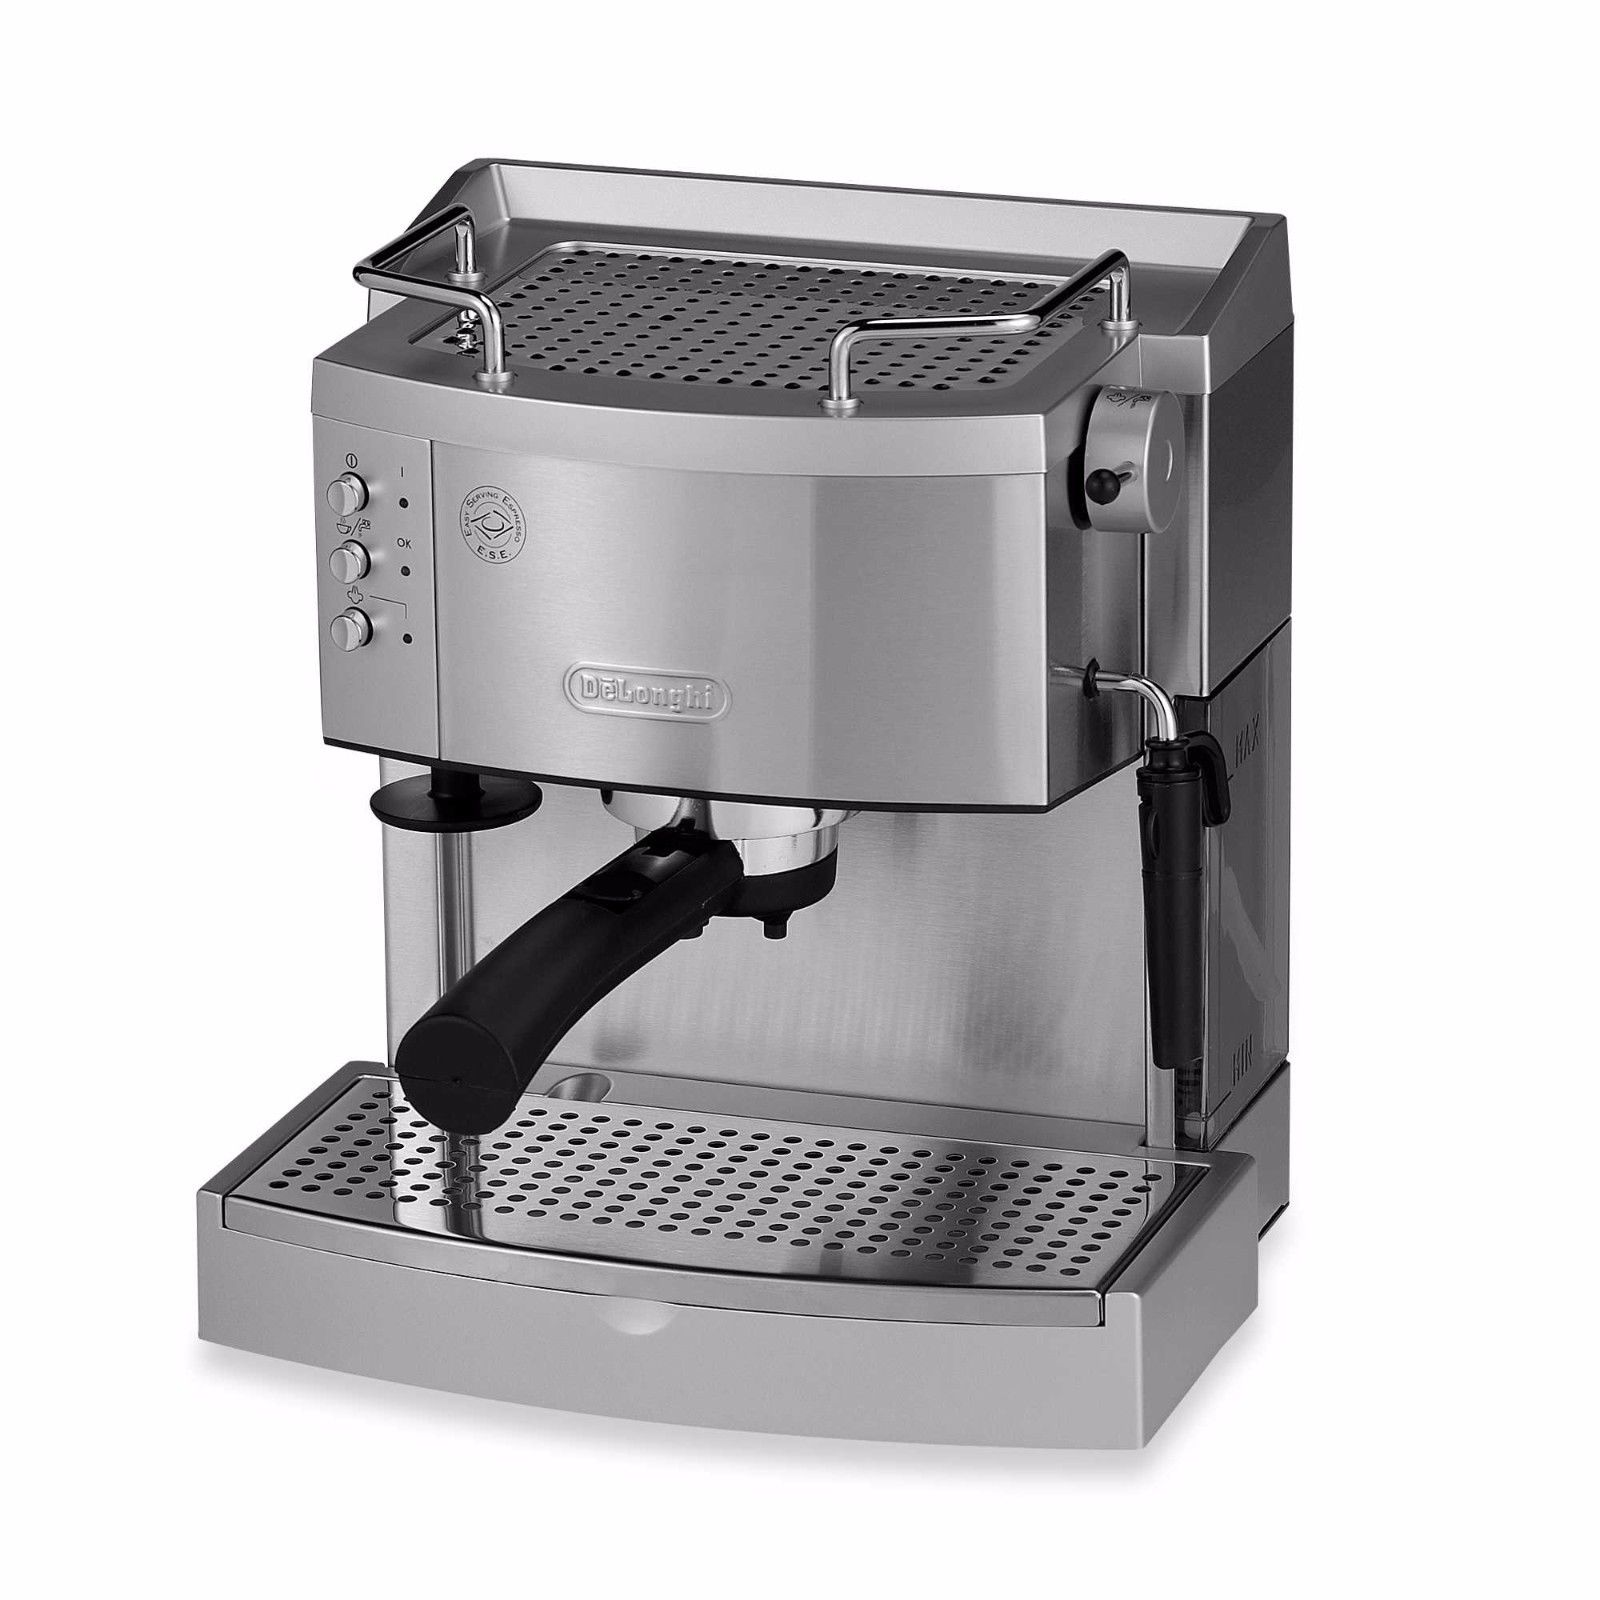 Awesome Delonghi Icona Coffee Machine Review